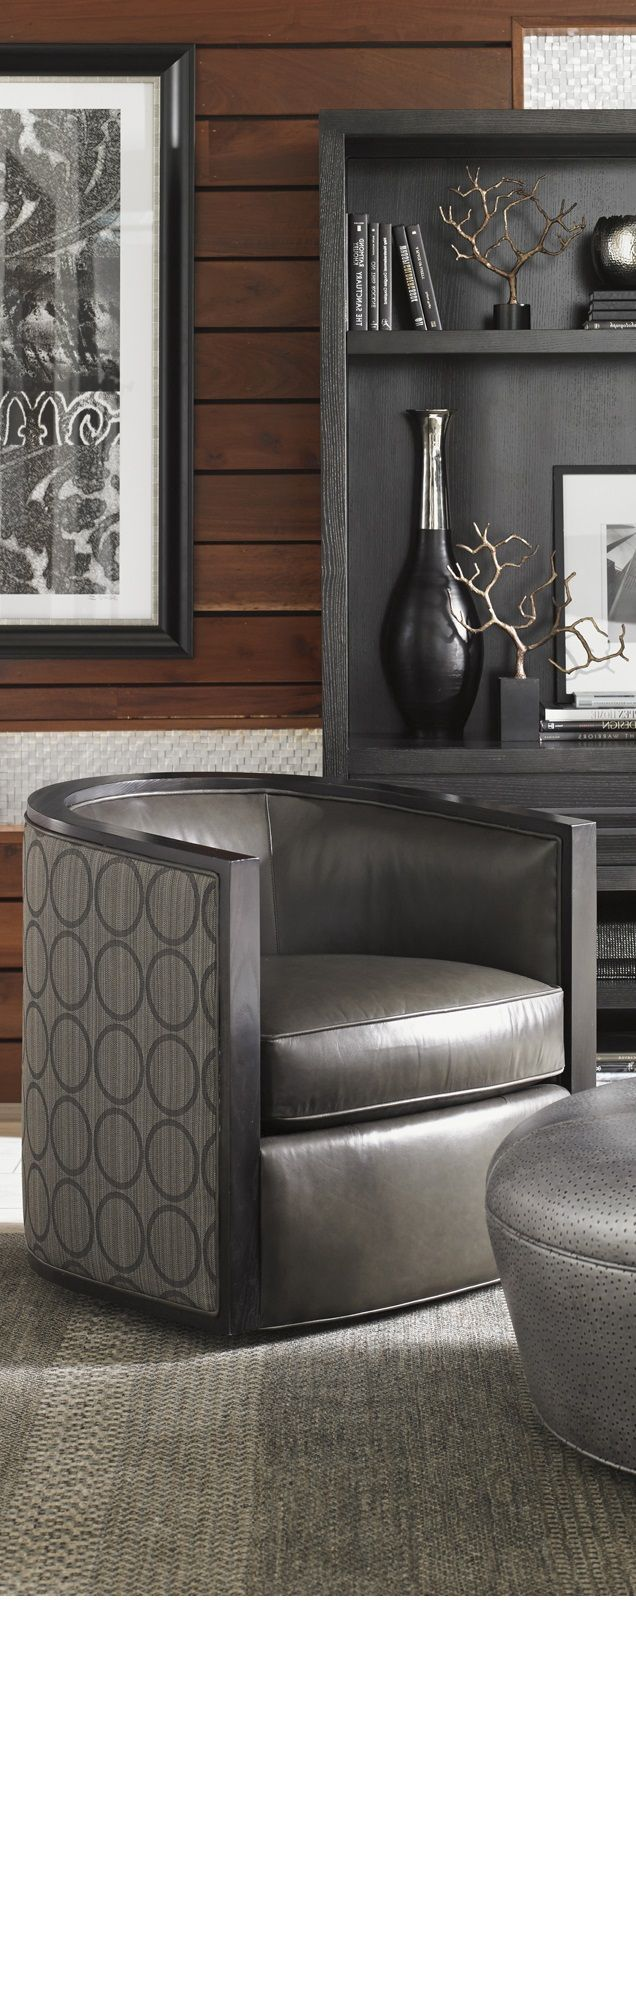 """""""luxury lounge chairs"""" """"designer lounge chairs"""" """"custom made lounge chairs"""" By InStyle-Decor.com Hollywood."""